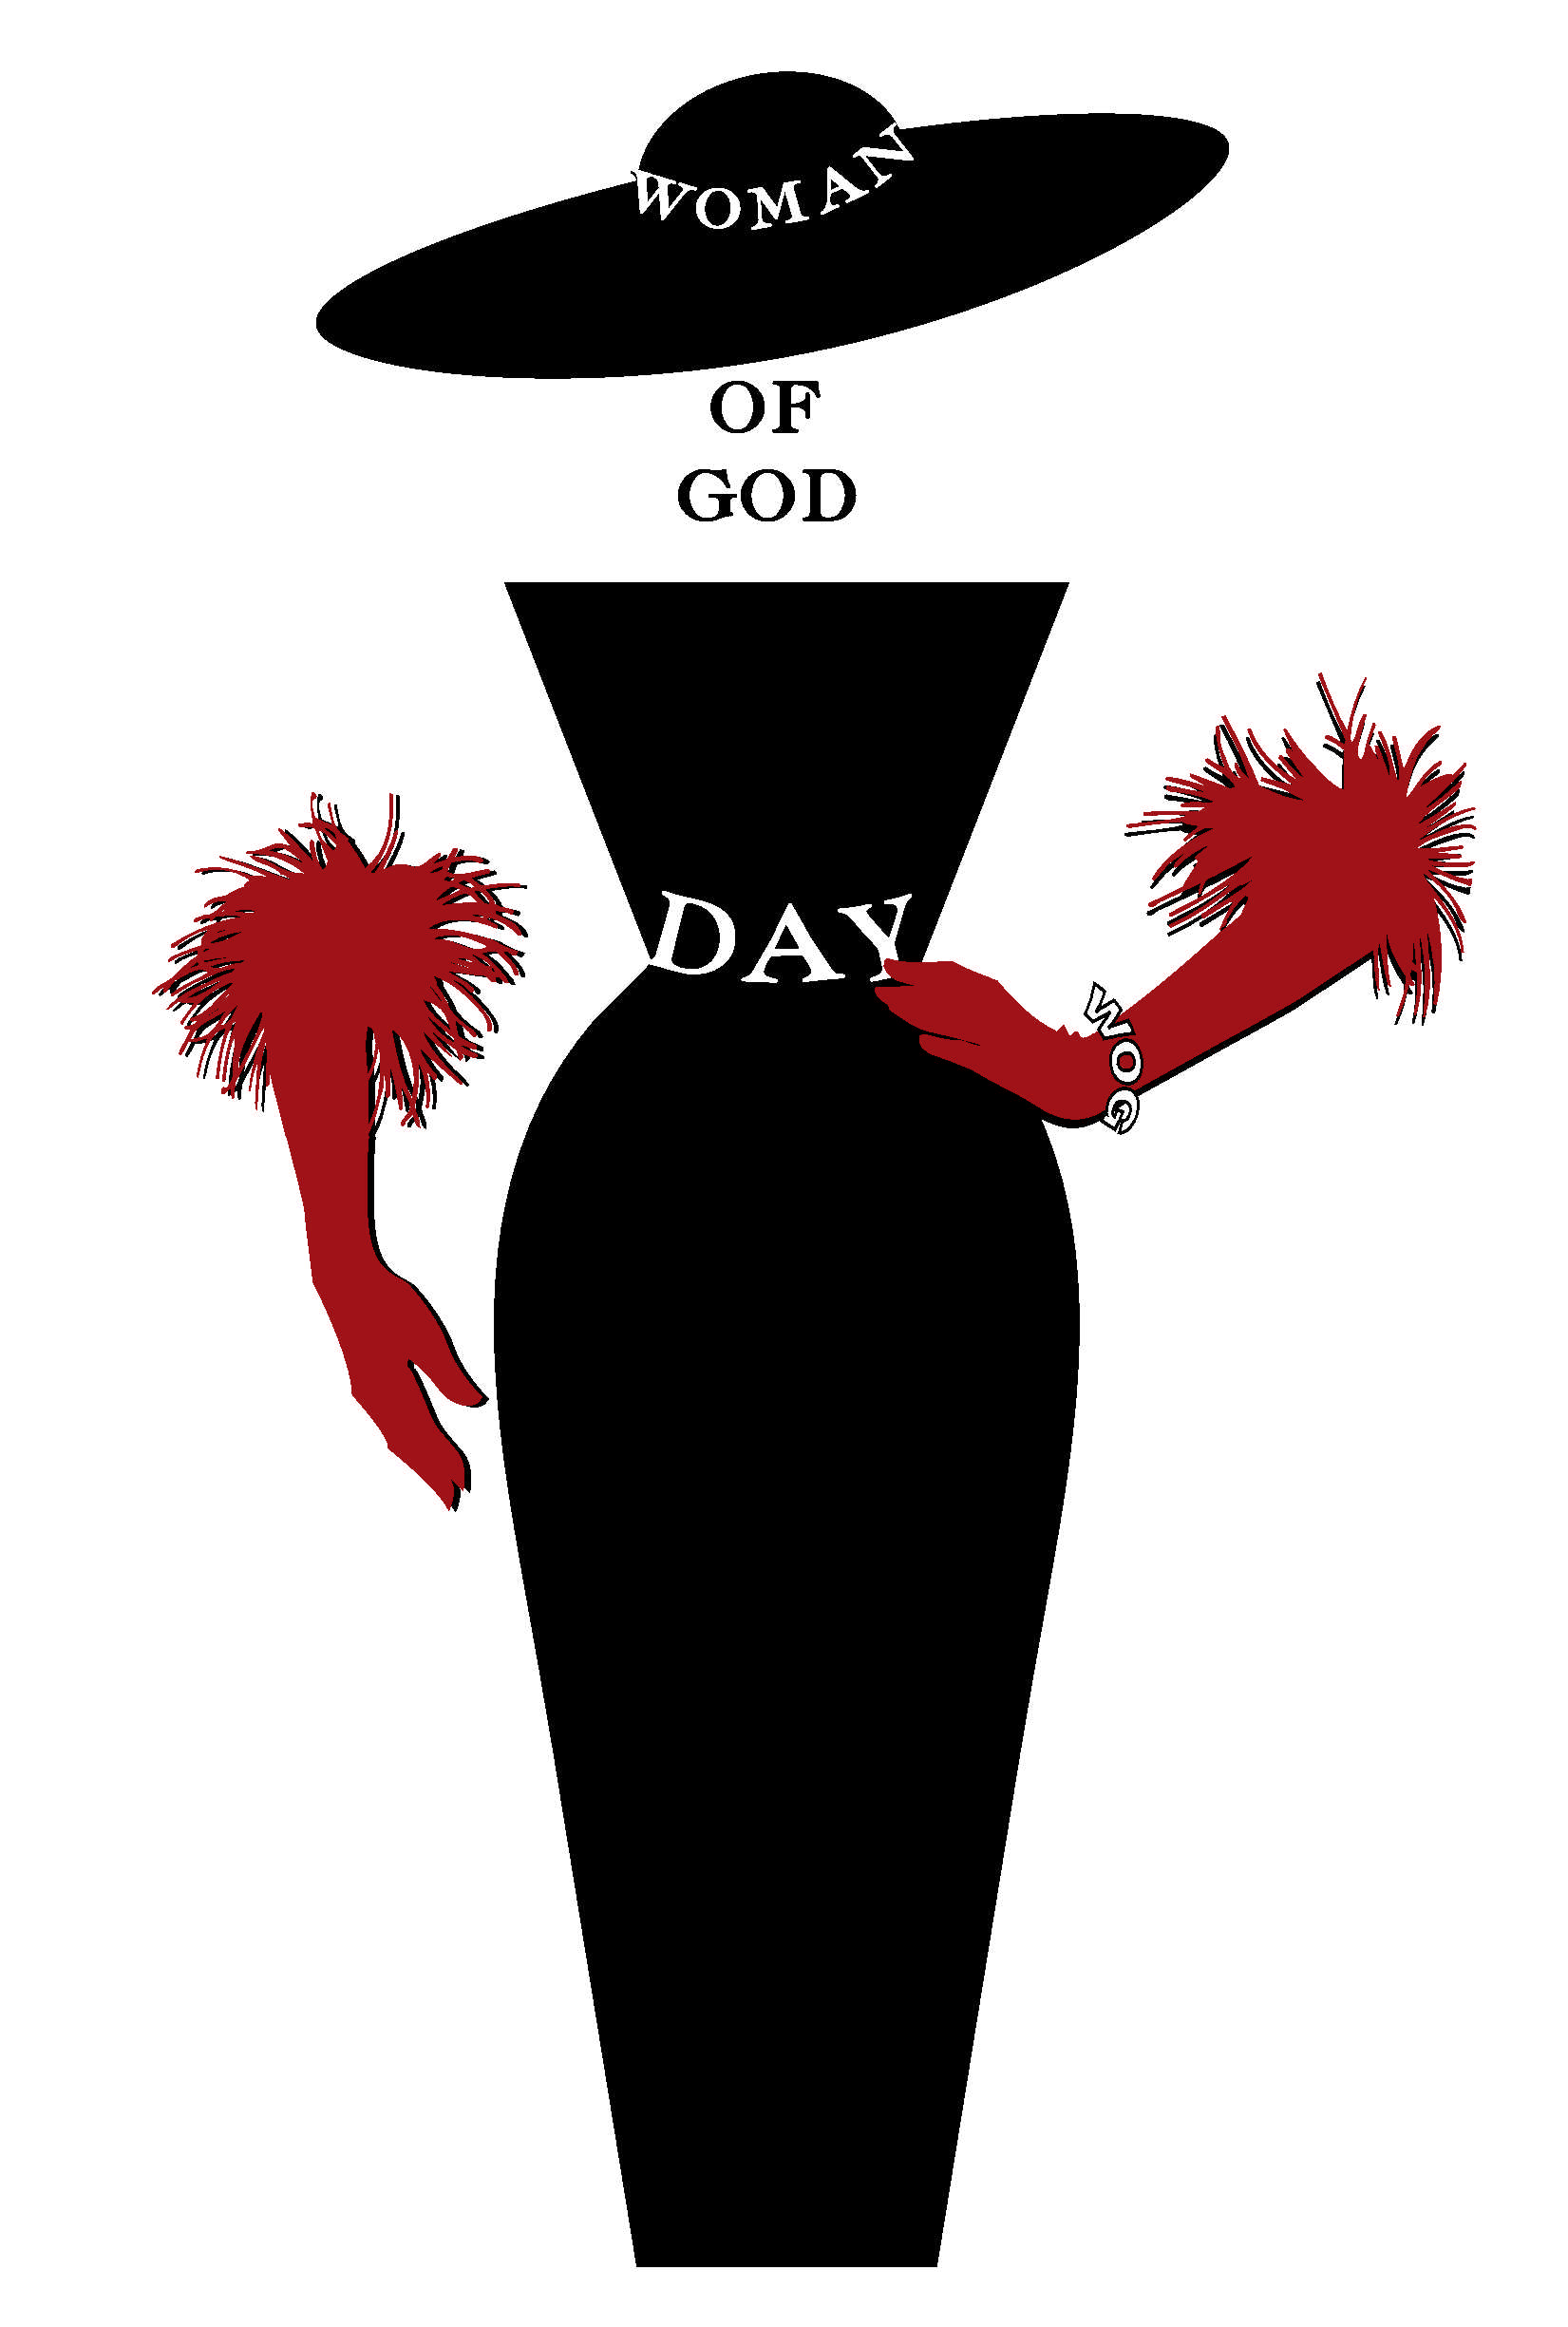 Welcome | Woman of God Day